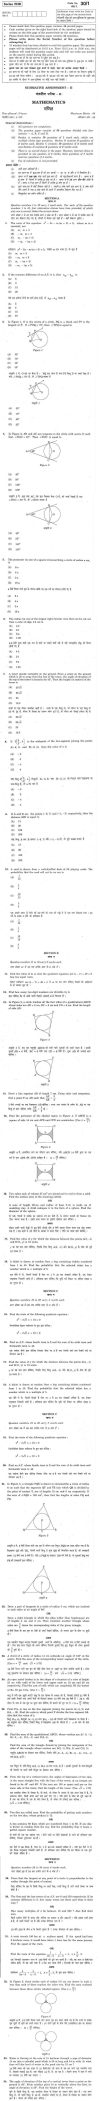 CBSE Class X Previous Year Question Papers 2011 Mathematics